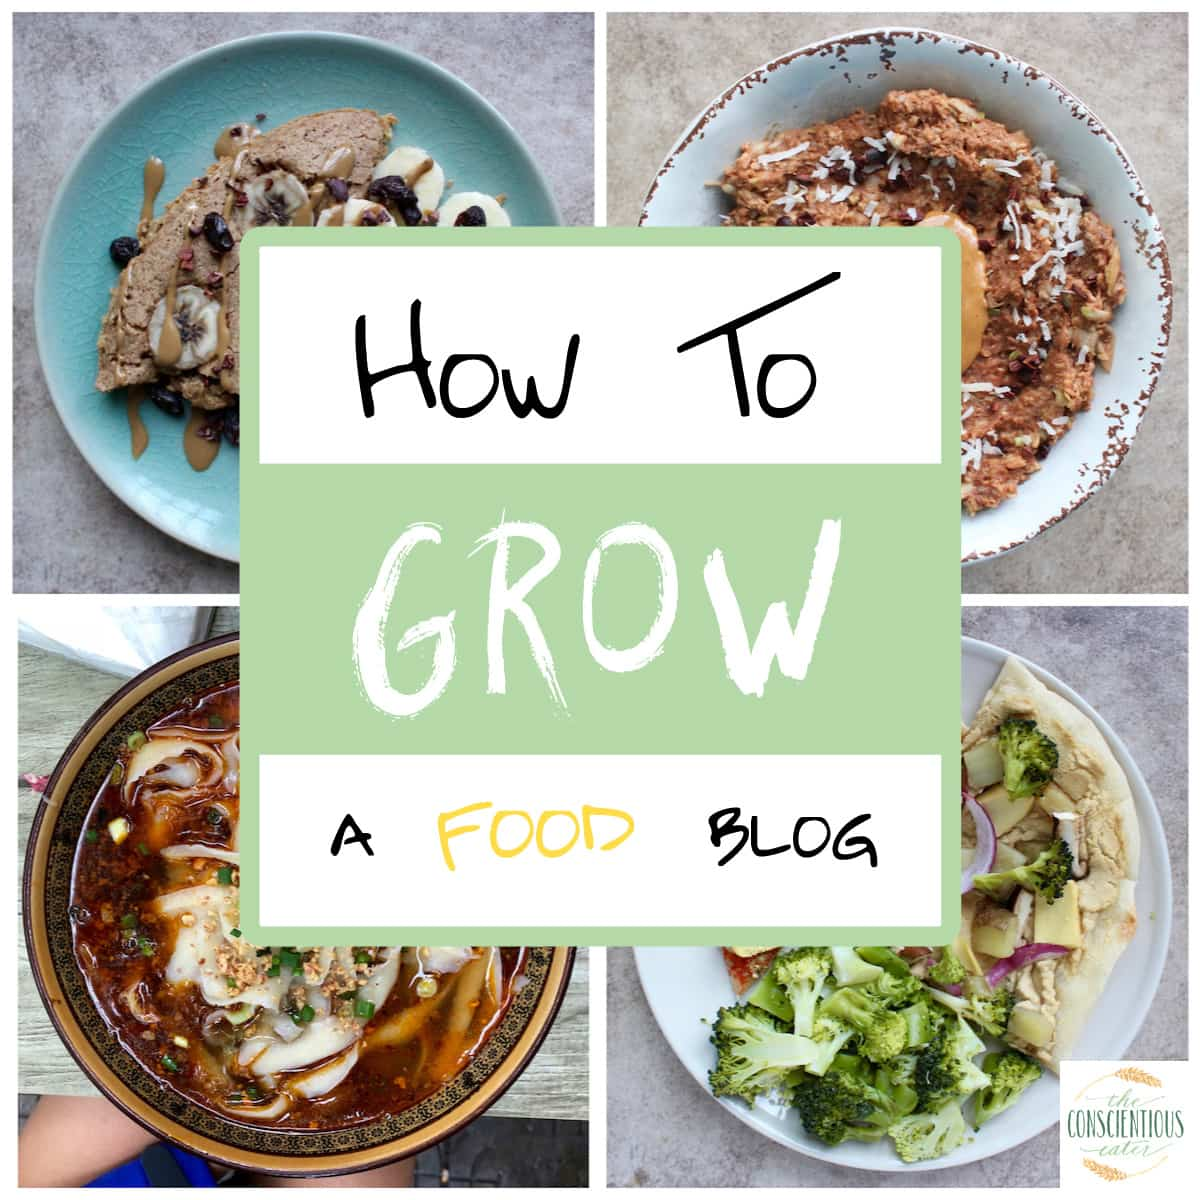 How To Grow A Food Blog